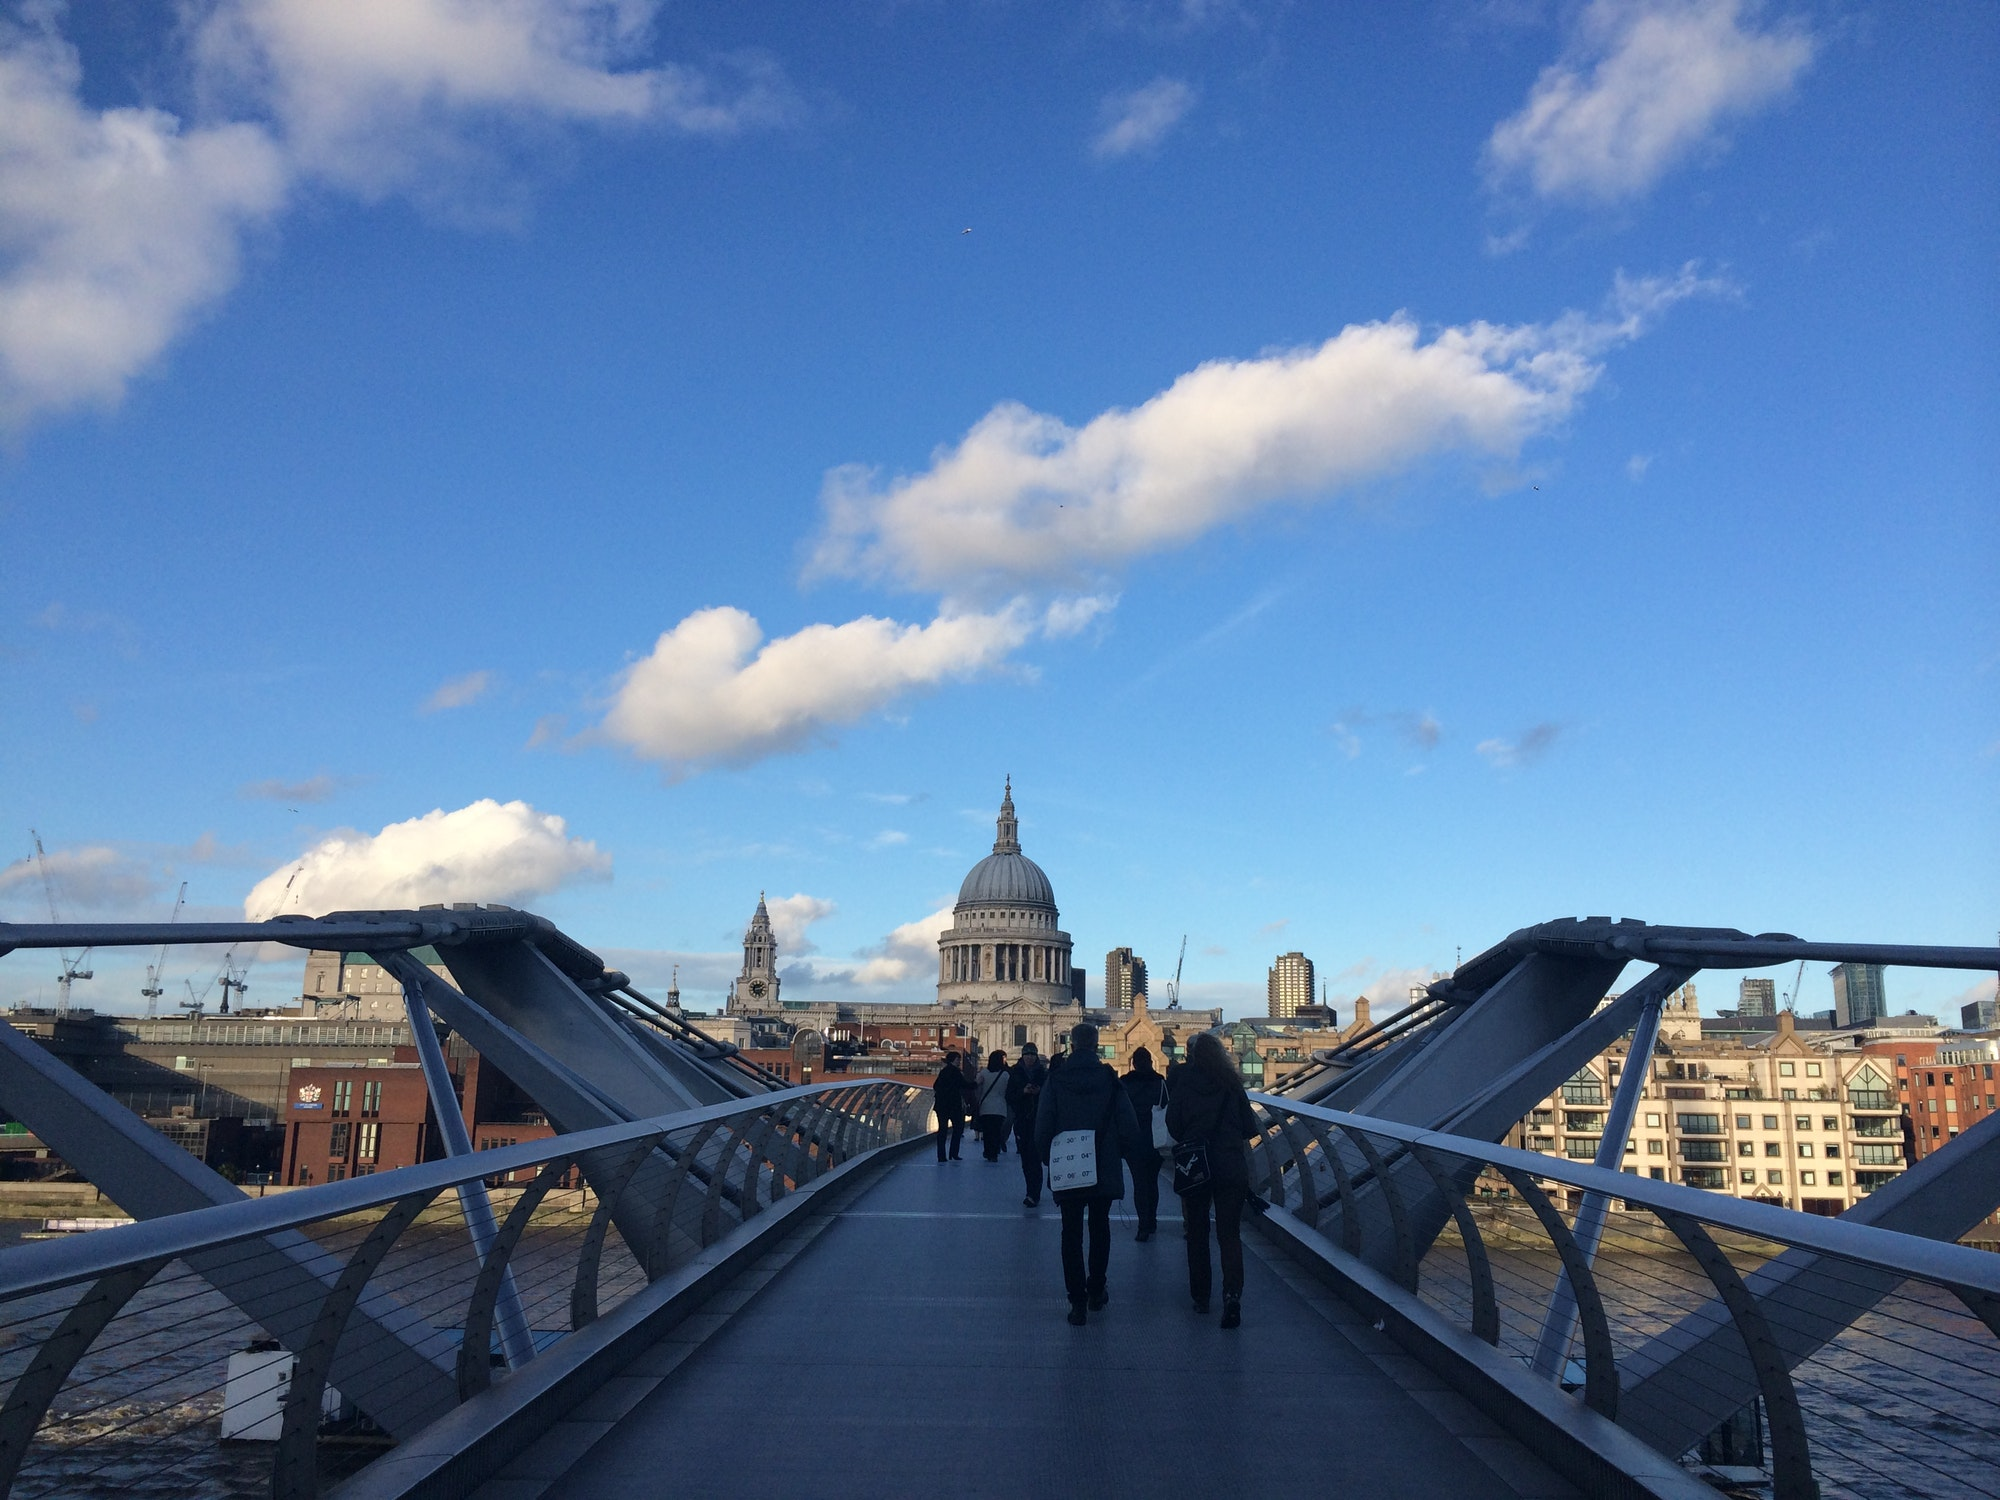 People on the Millennium Bridge, London, UK